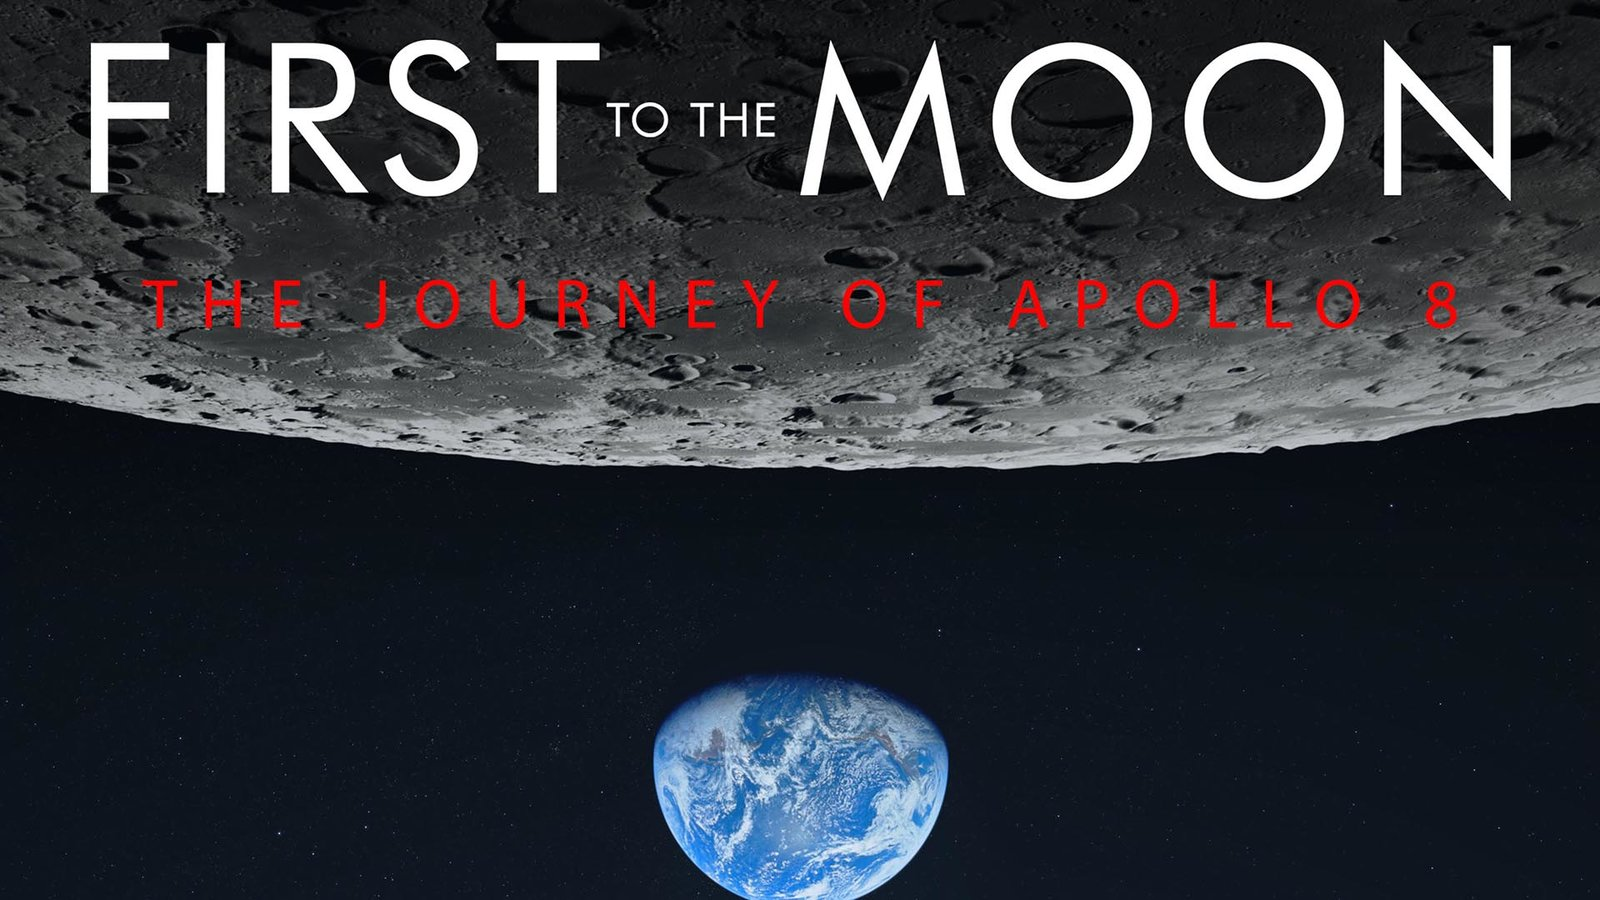 First to the Moon - The Journey of Apollo 8